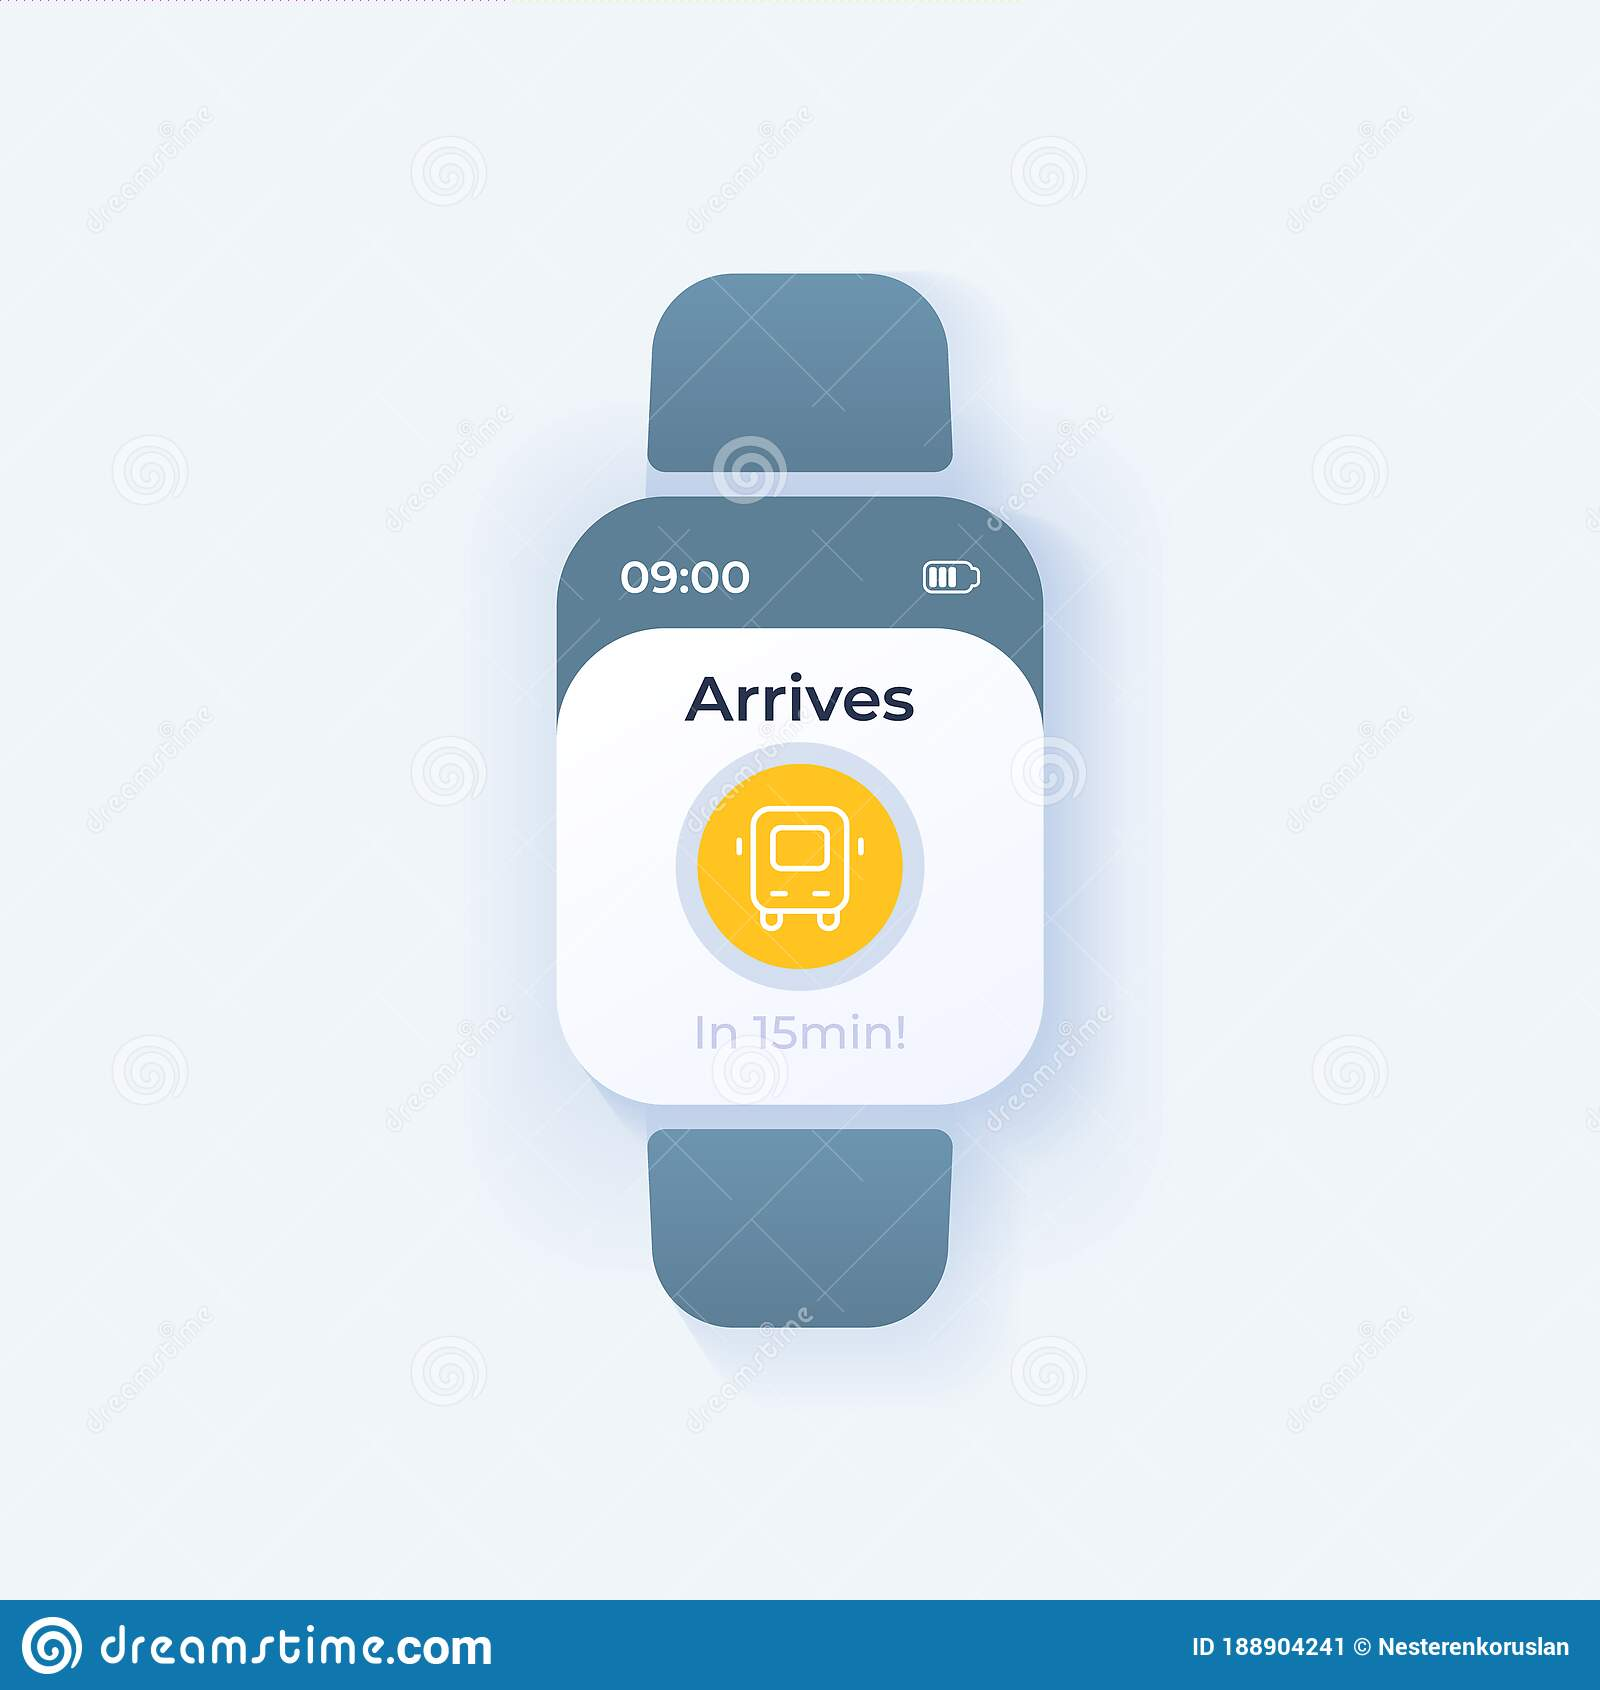 Bus Tracking Smartwatch Interface Vector Template Stock Vector Illustration Of Cartoon Smart 188904241